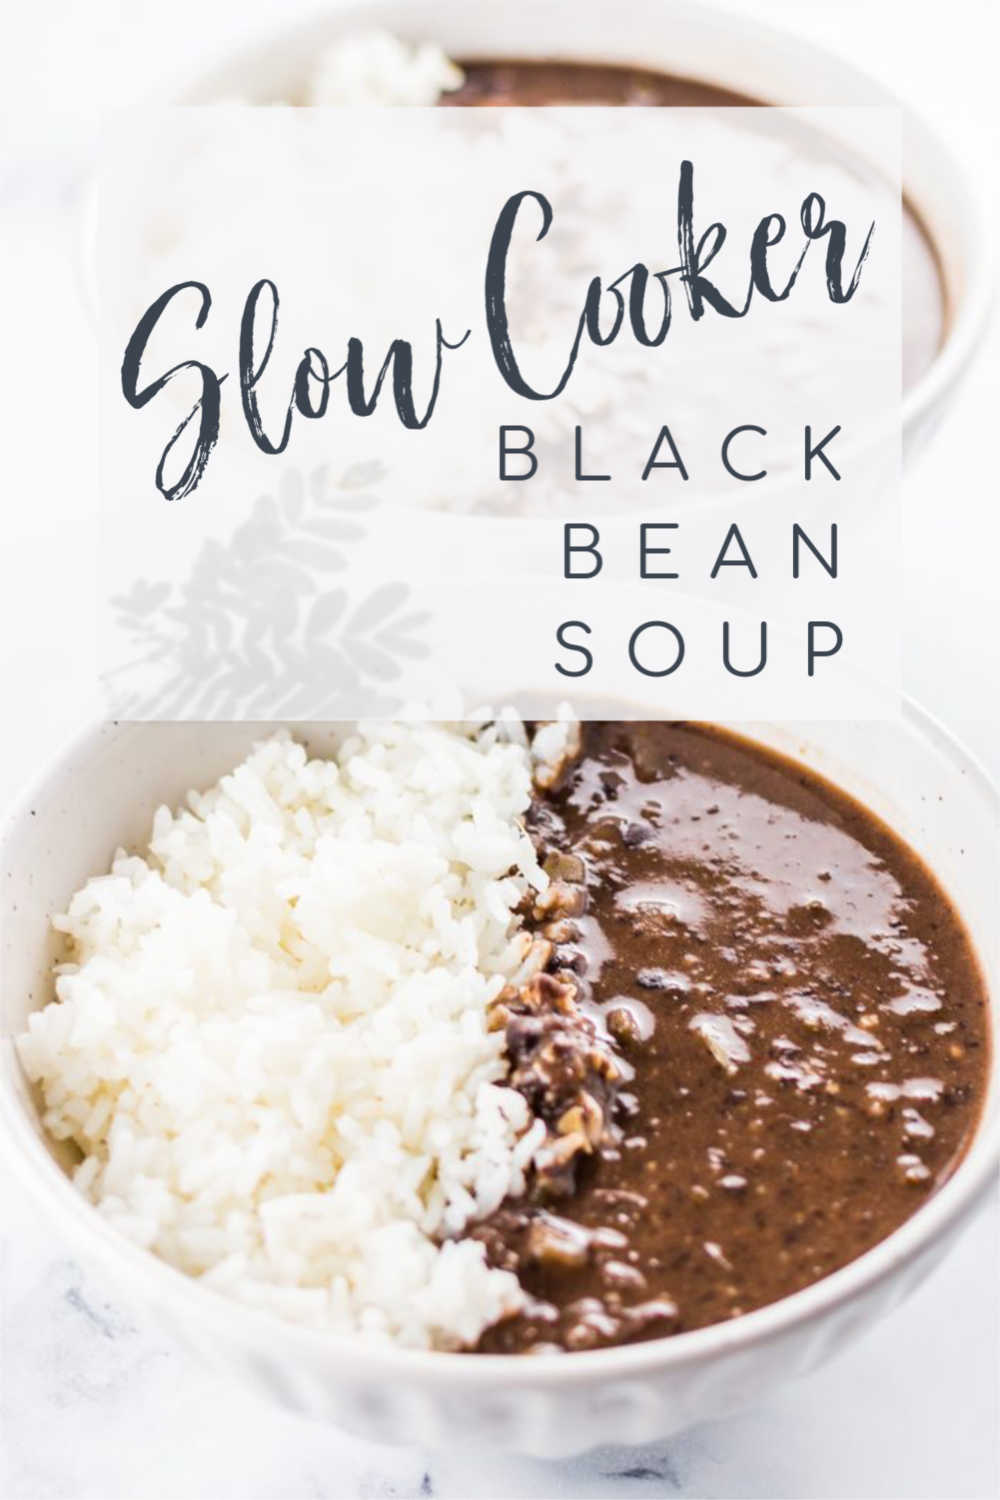 How to Make the Easiest Crock Pot Black Bean Soup {WW 6 Green, 1 Green + Purple Pts, Vegan, Vegetarian, Gluten Free}